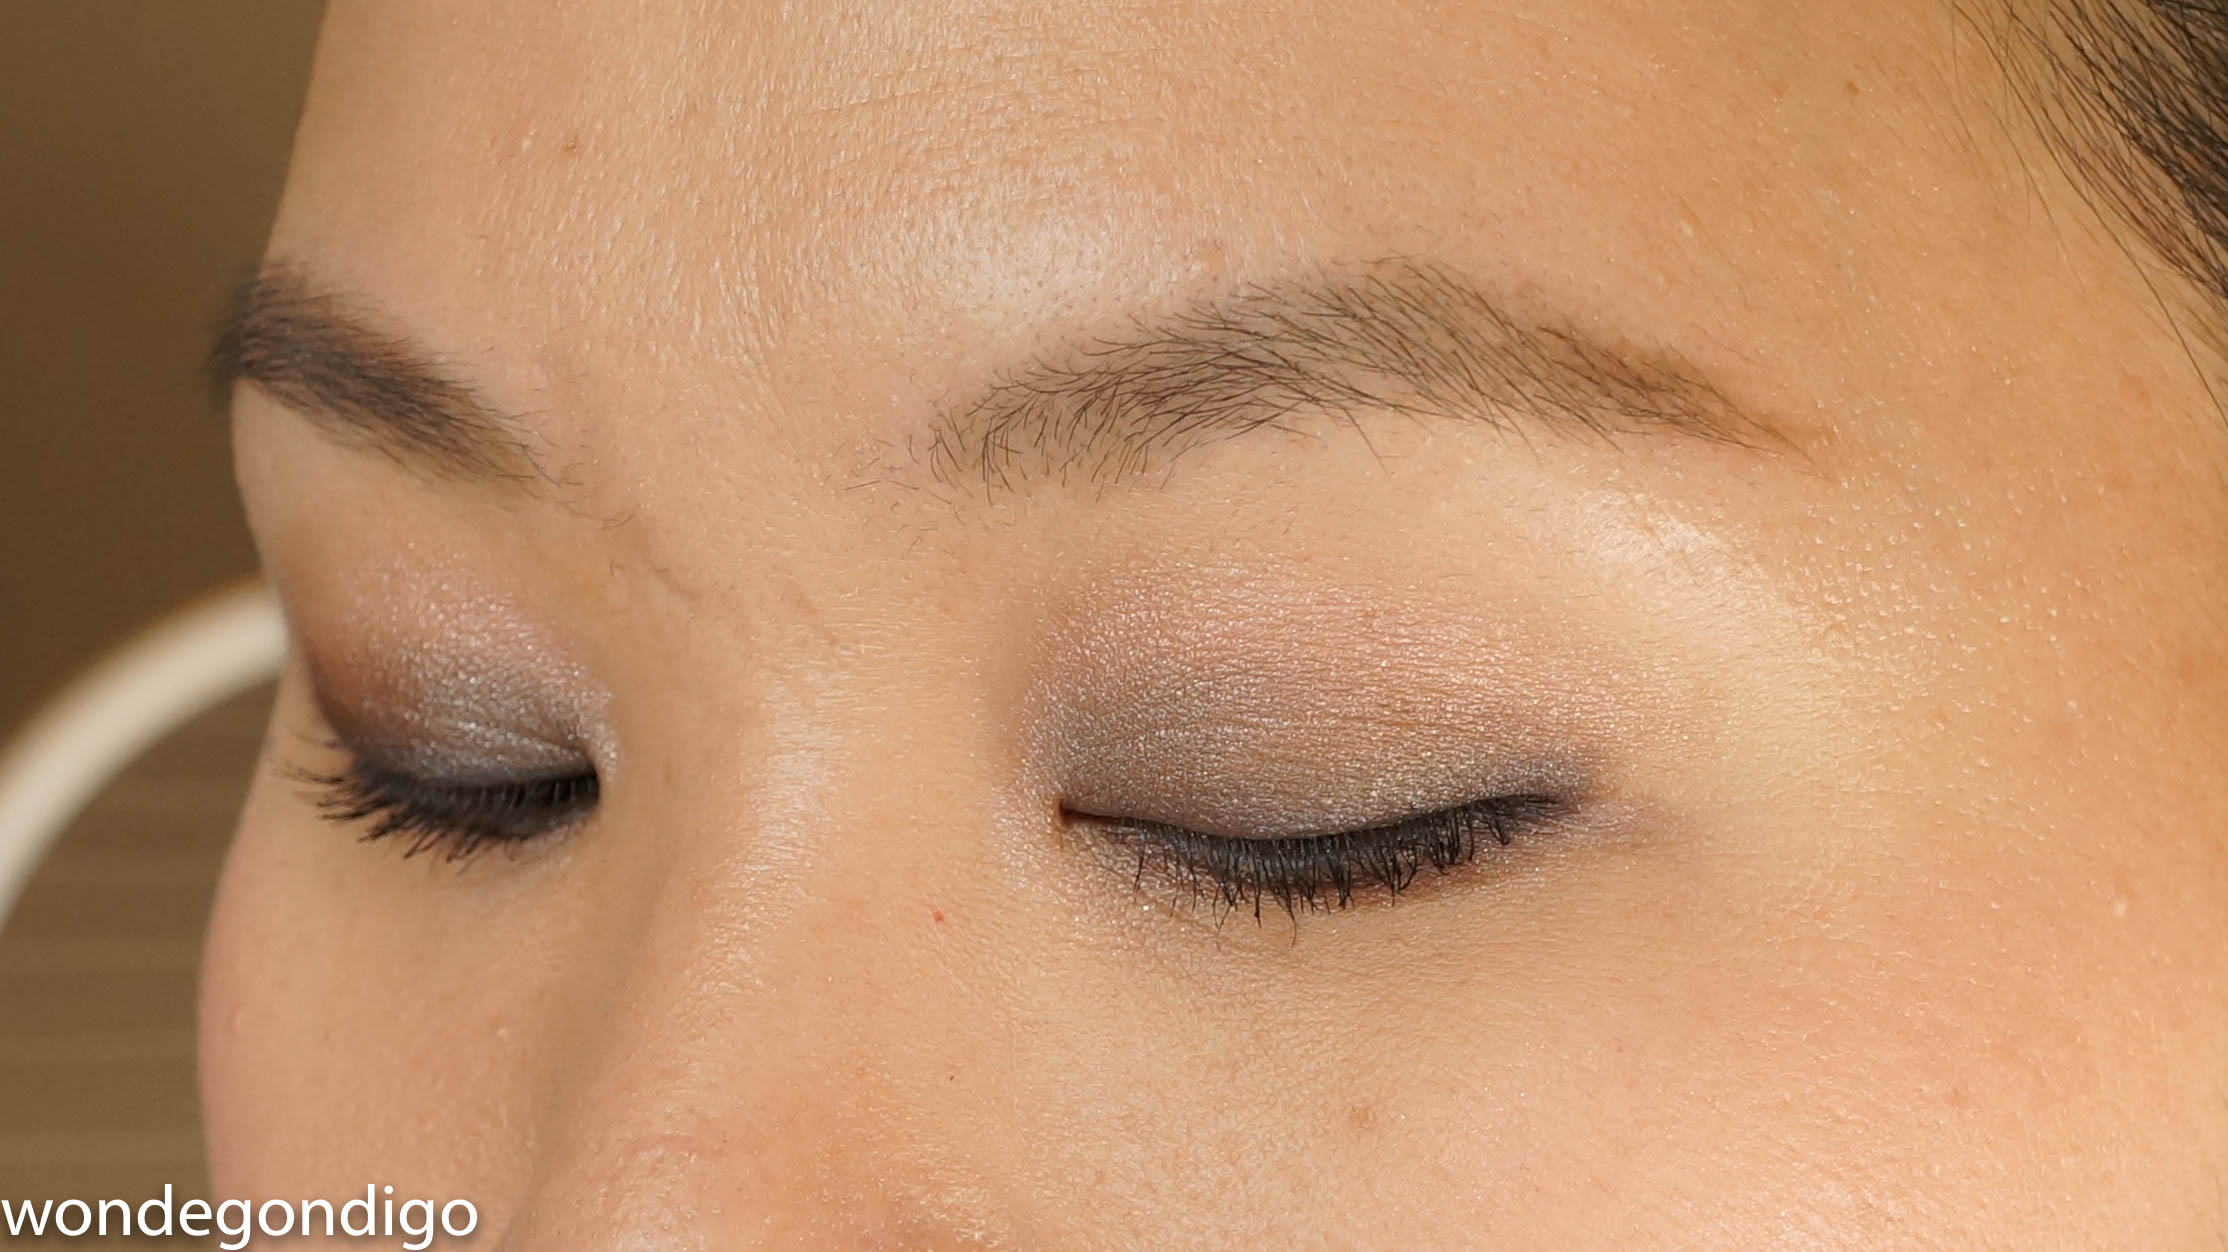 Here's a GIANT GIANT closeup of it on my eyes. Anyone have an idea how I can make this smaller on Squarespace?